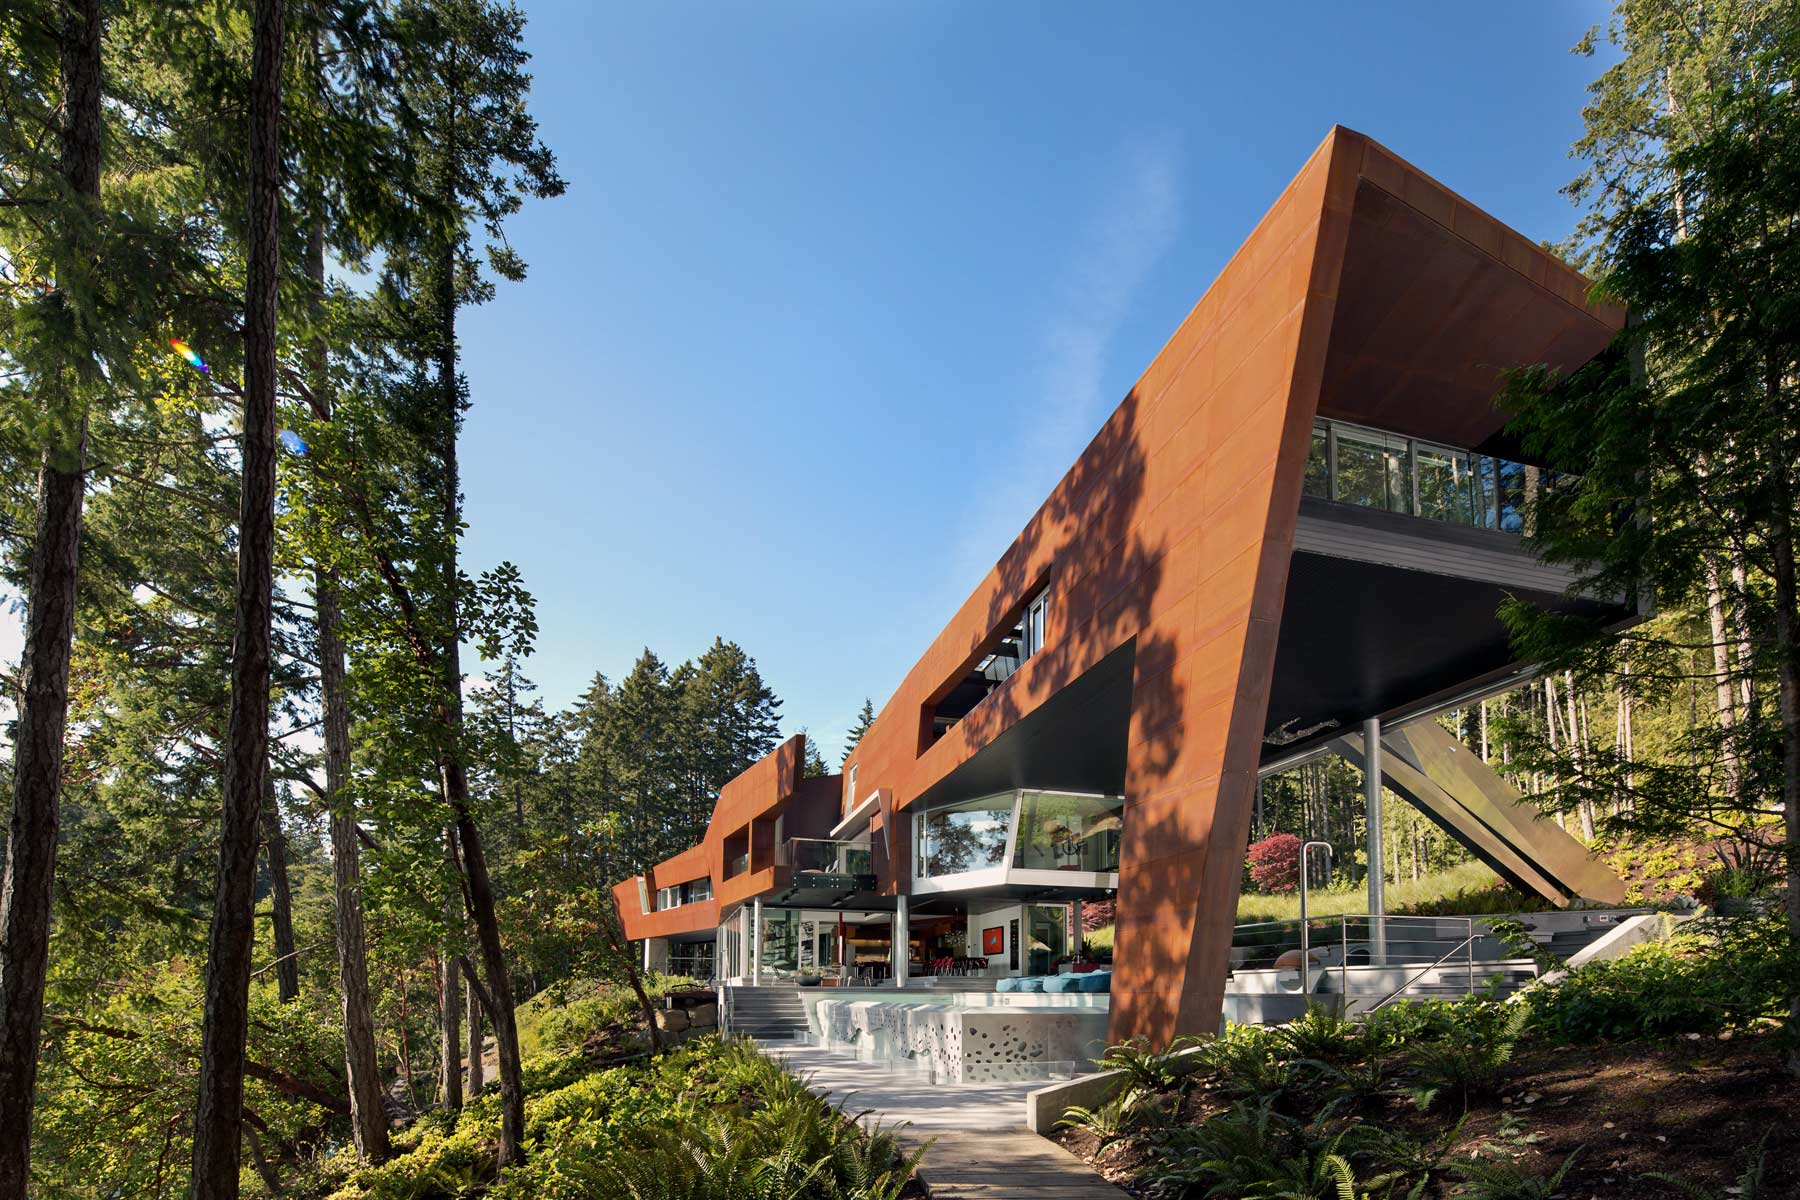 Photograph of the Gulf Islands Residence designed by AA Robins.